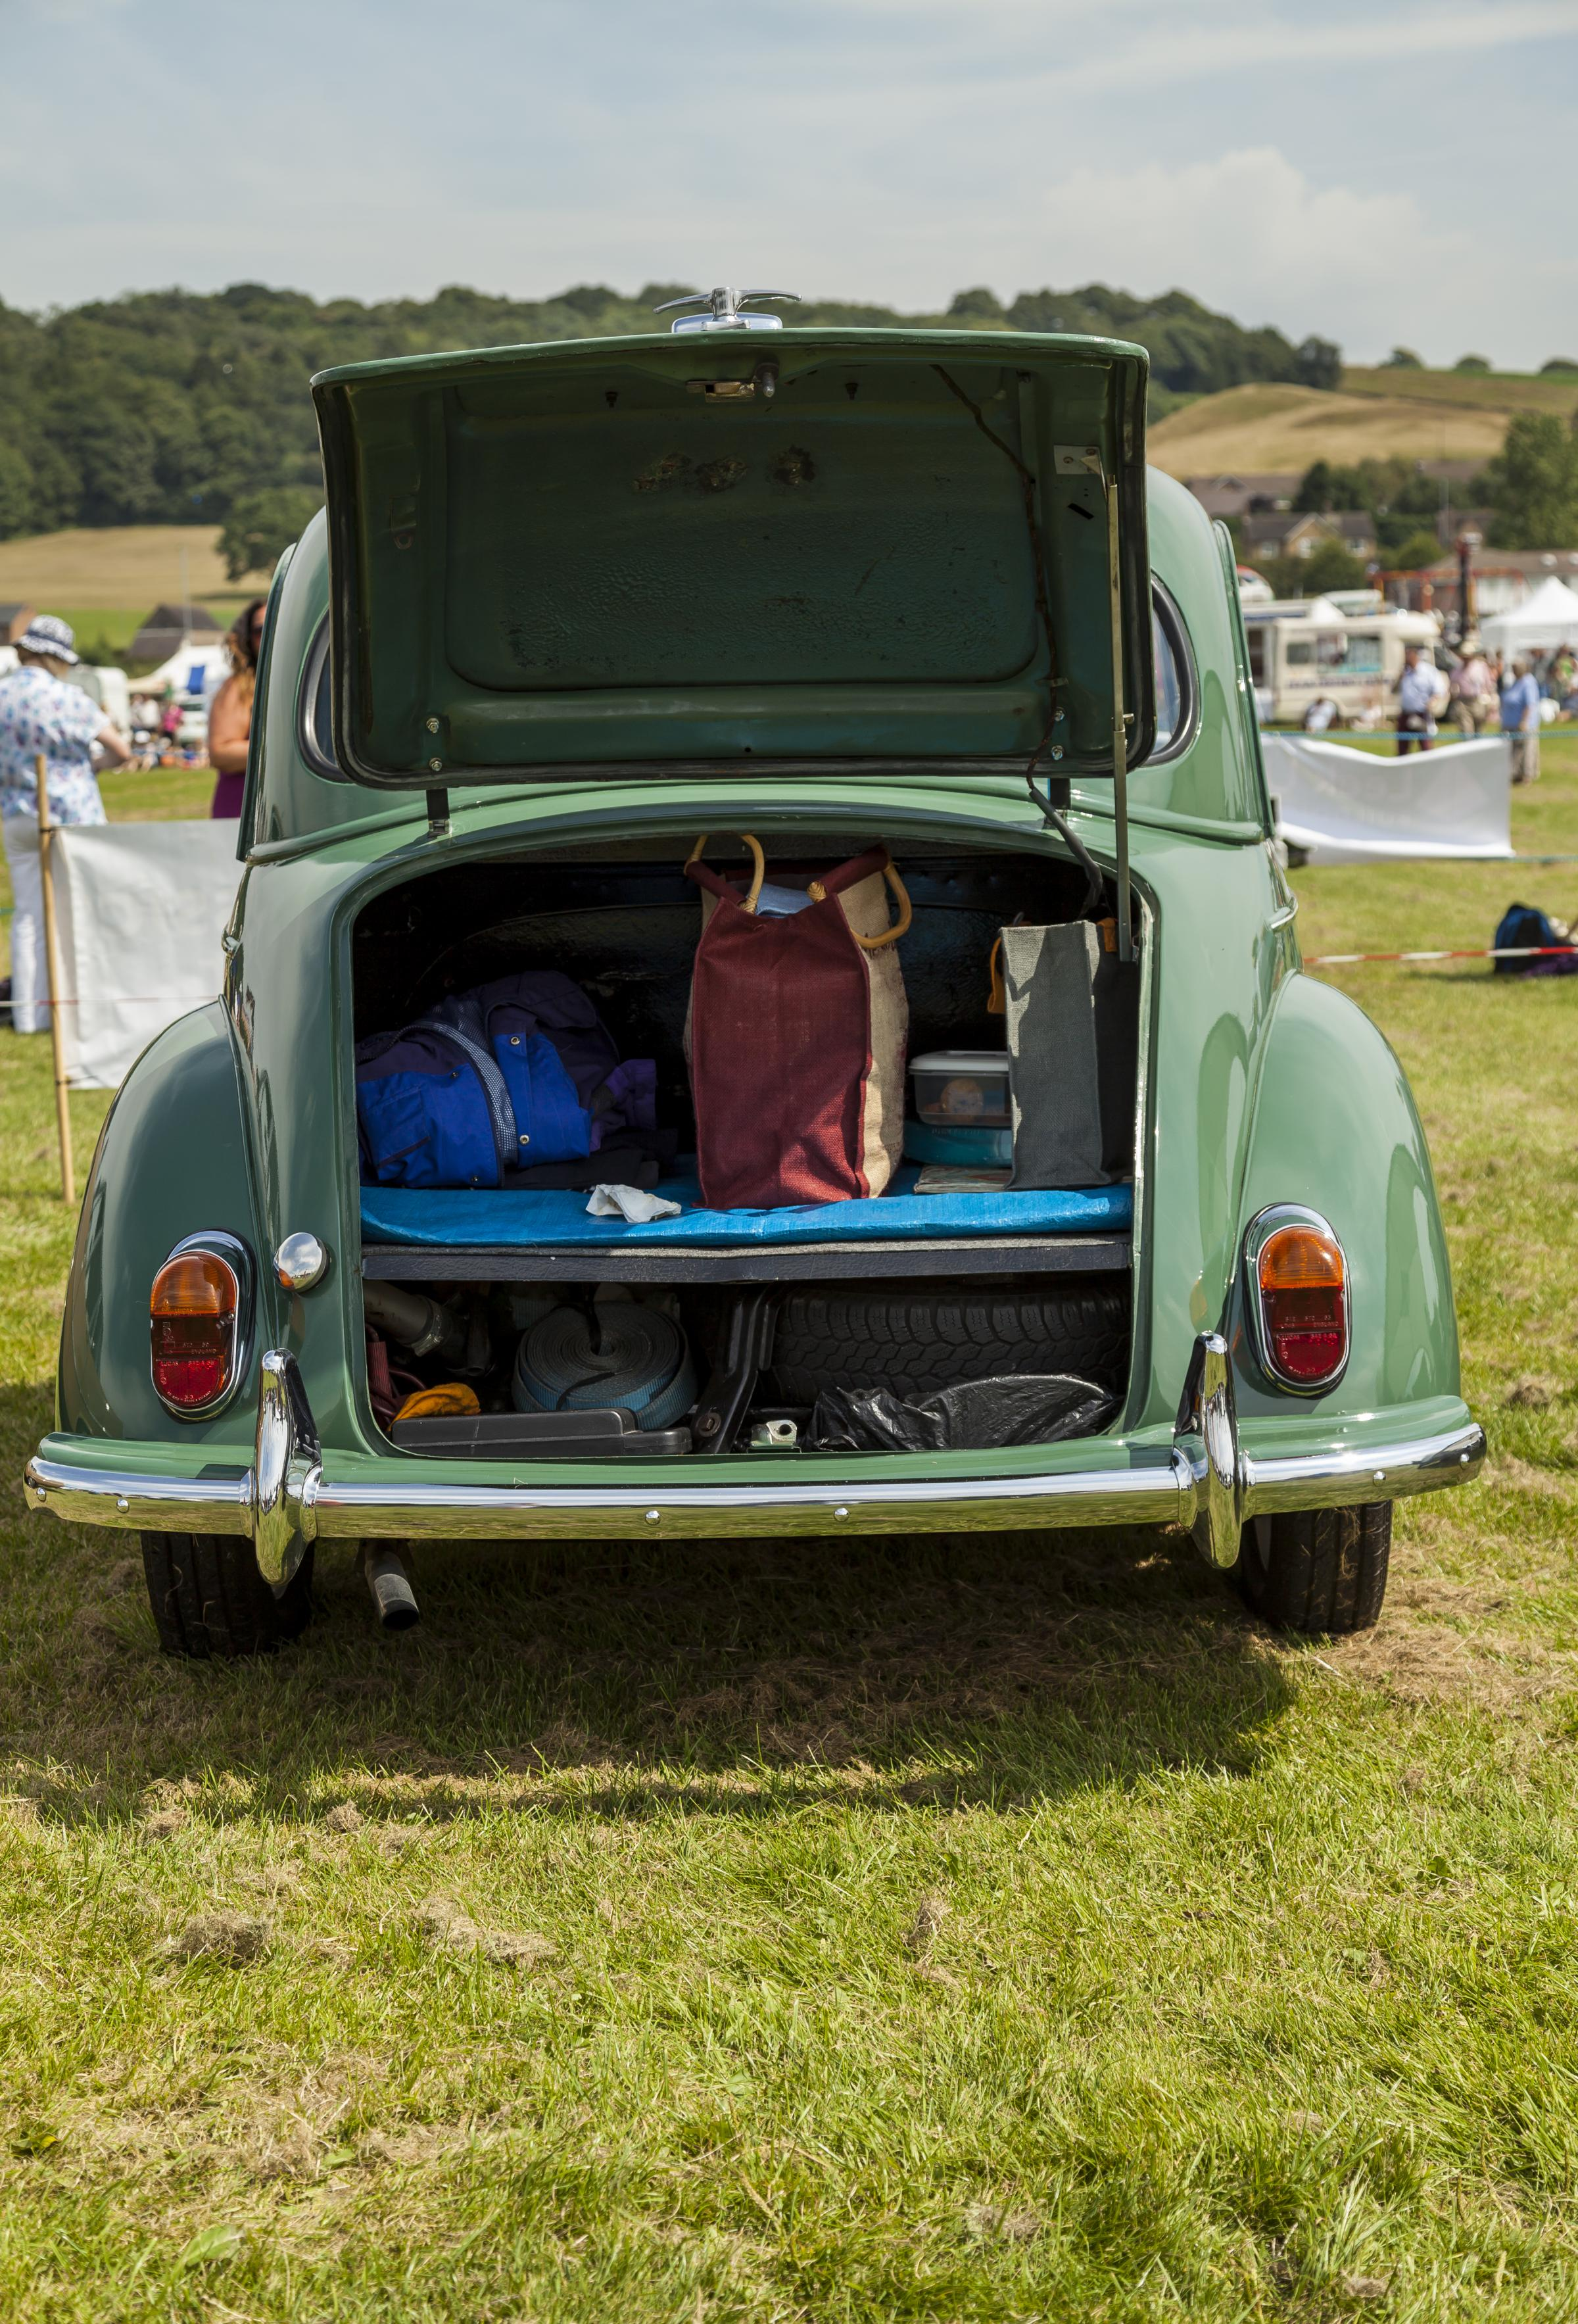 FOOD FOR THOUGHT: Morris Minor Classic car